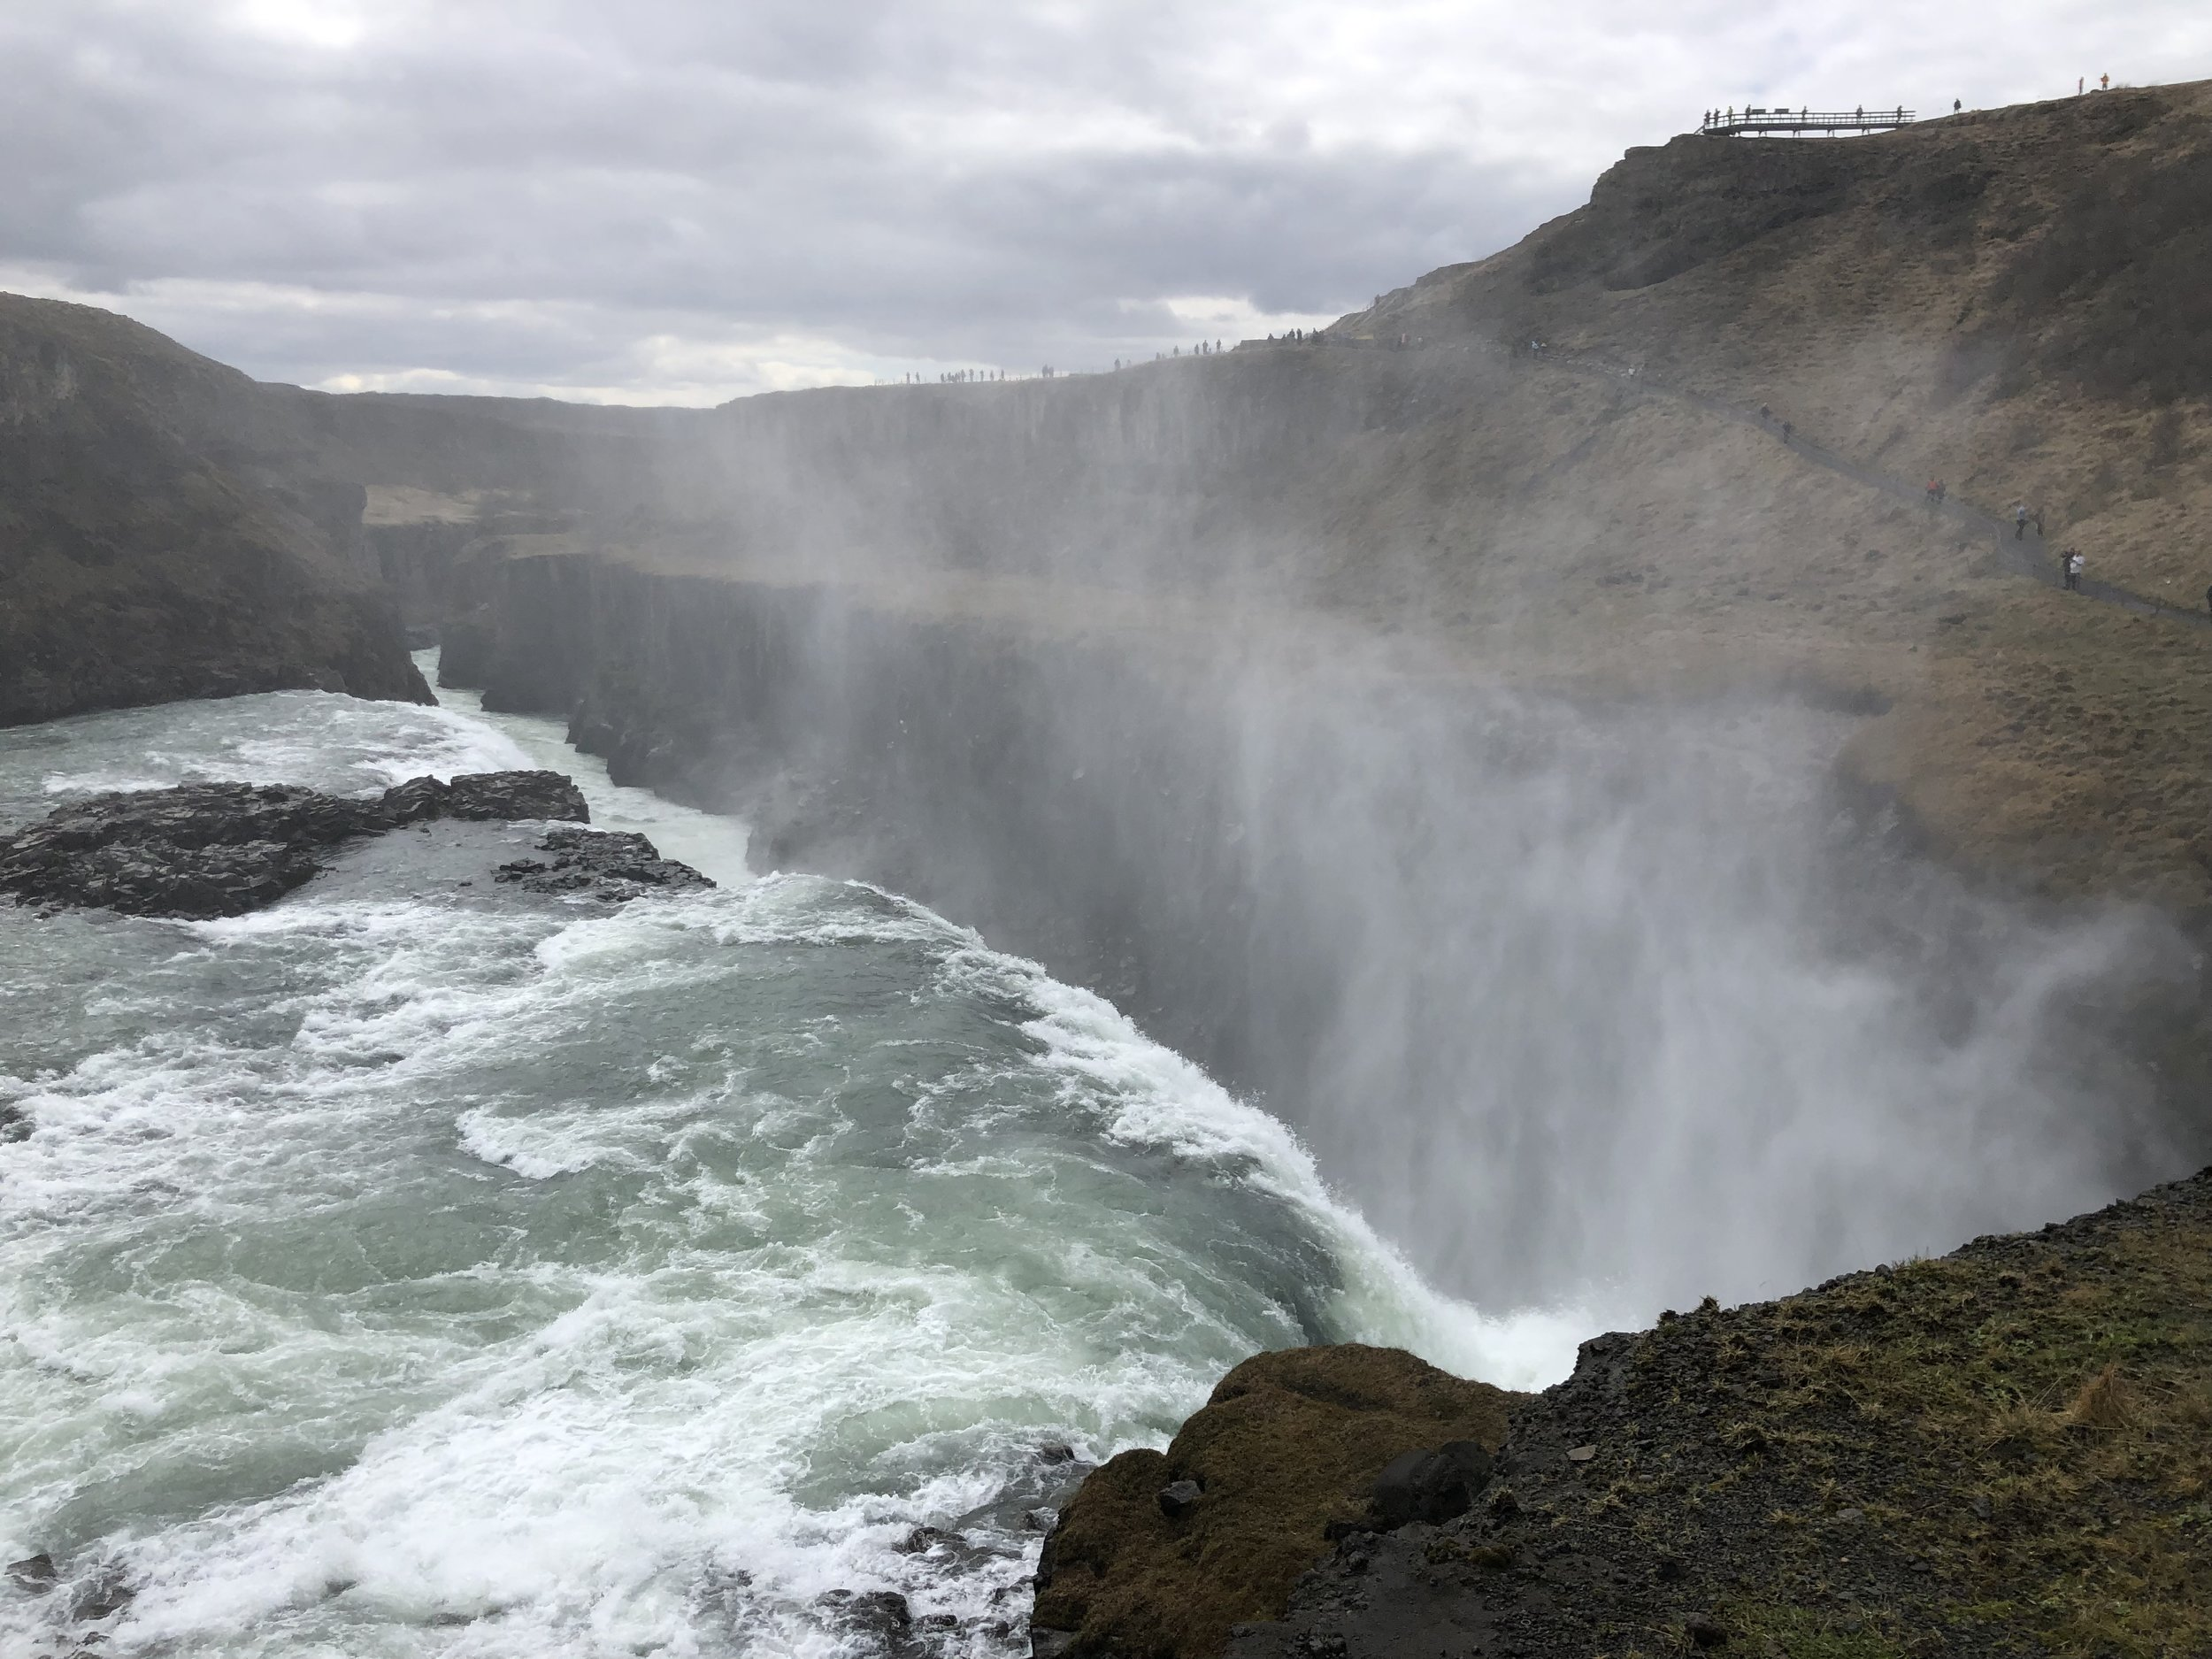 Iceland is blessed with many dramatic and powerful waterfalls.